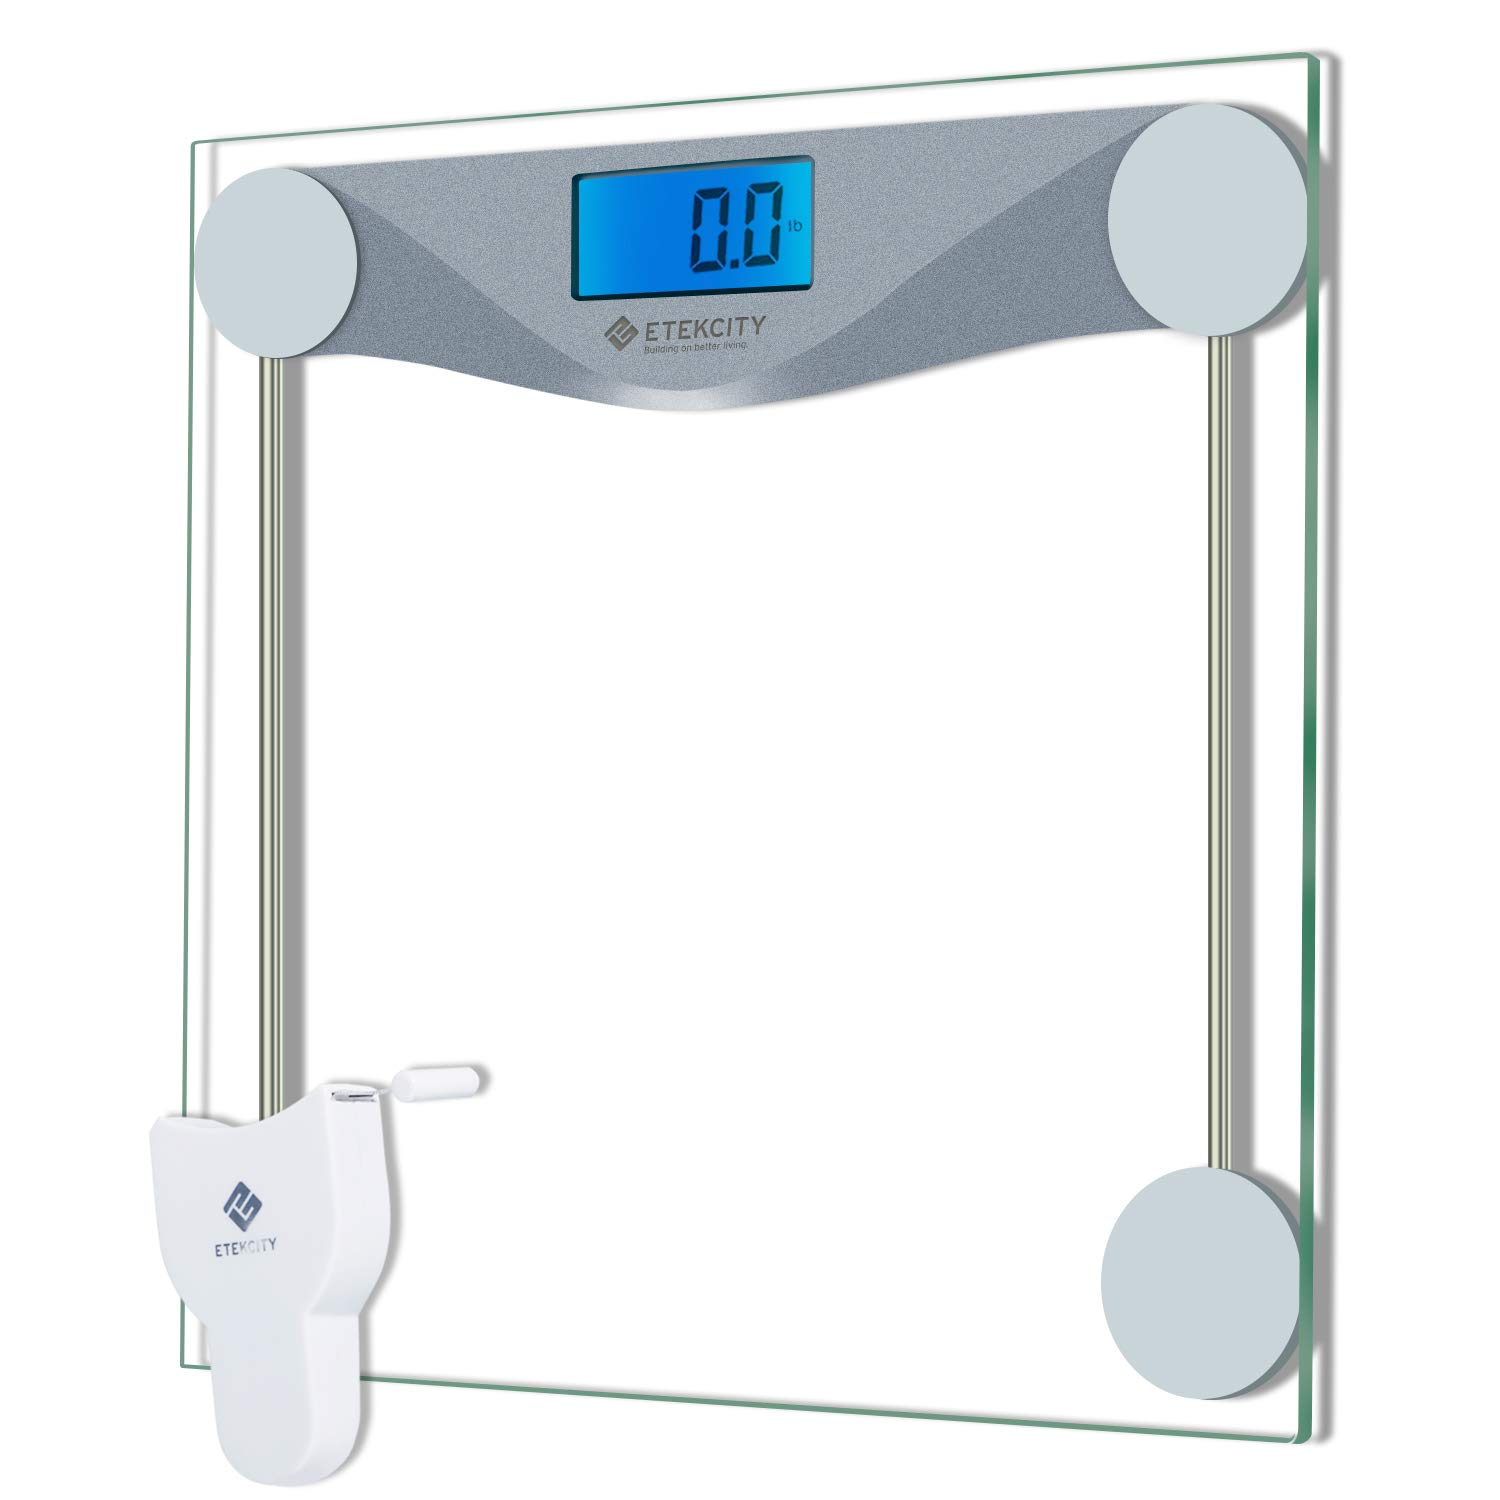 Etekcity Digital Bathroom Body Weight Scale, High Precision Smart Step-on Technology, Tempered Glass, Backlit Display, Body Tape Measure, 400 lb/180 kg product image